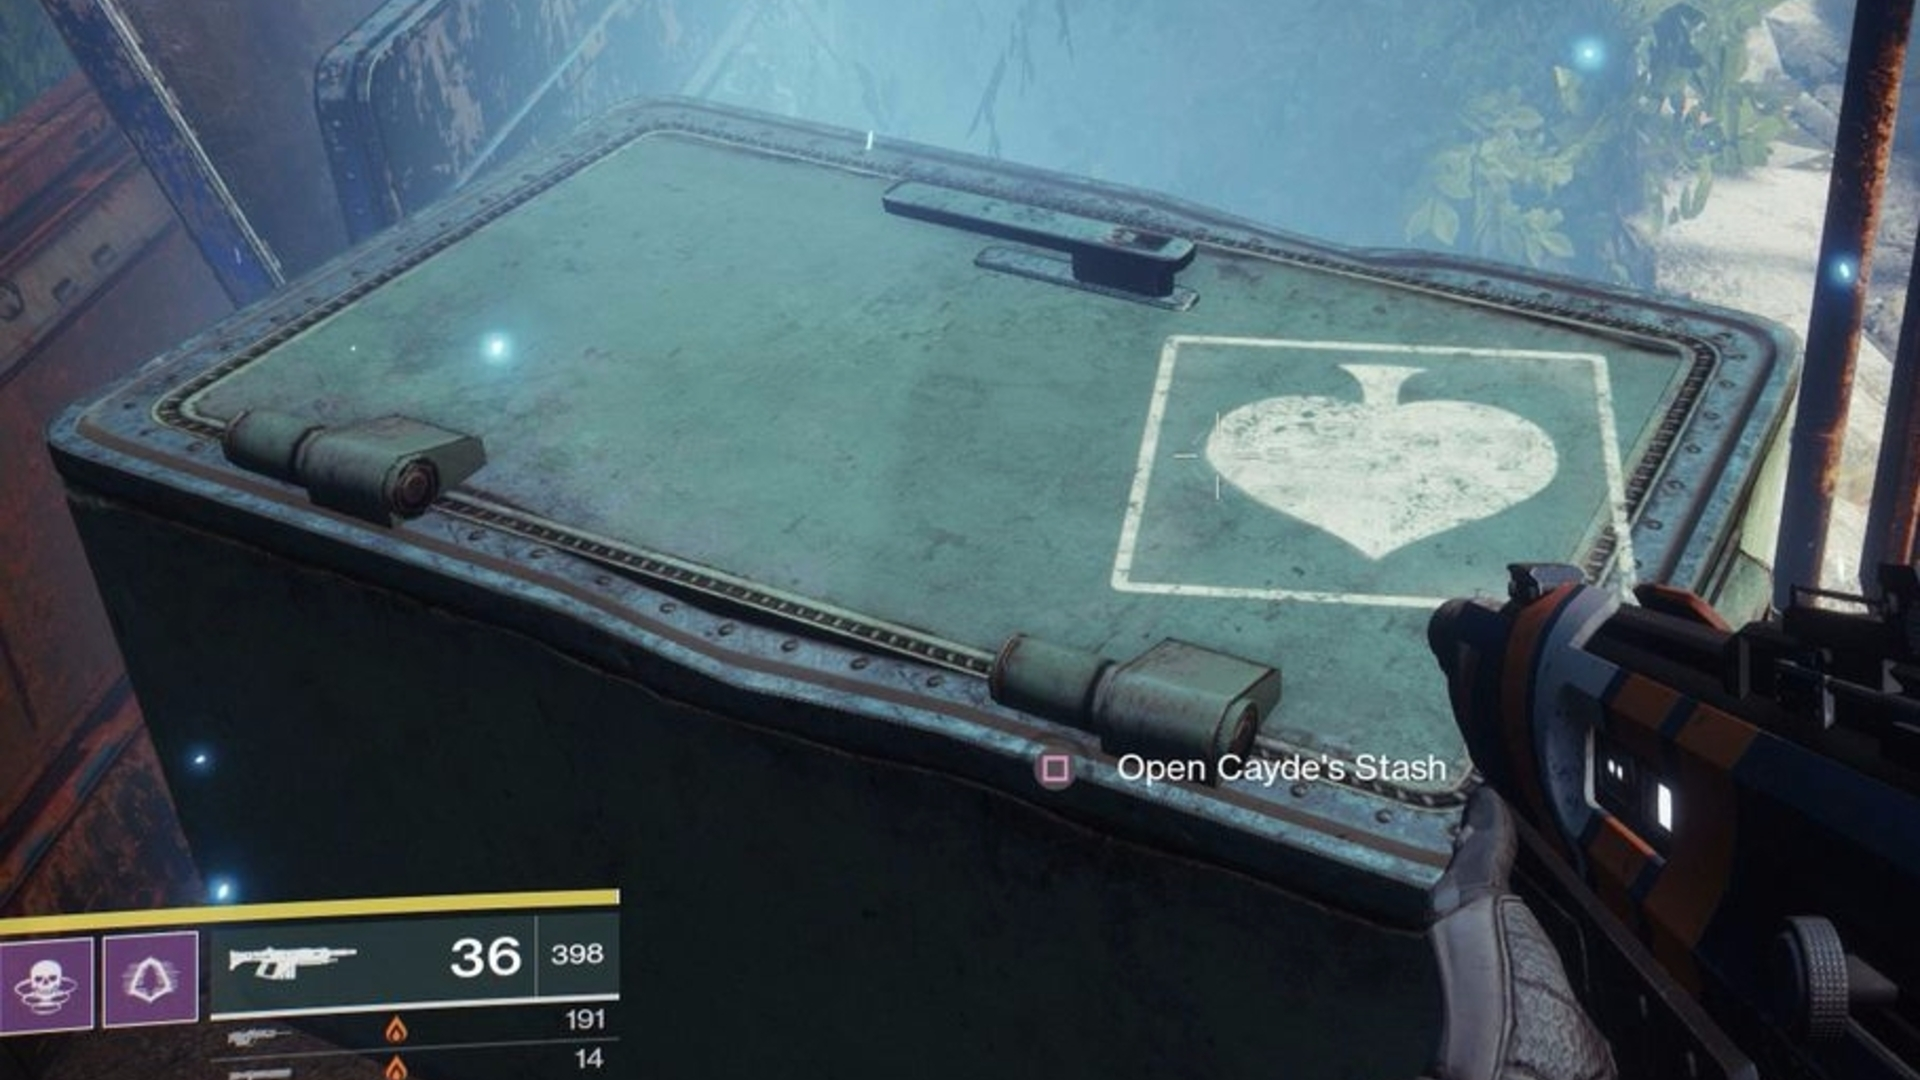 destiny 2 treasure maps explained how to find cayde 6 treasure maps and receive letter fragments eurogamernet